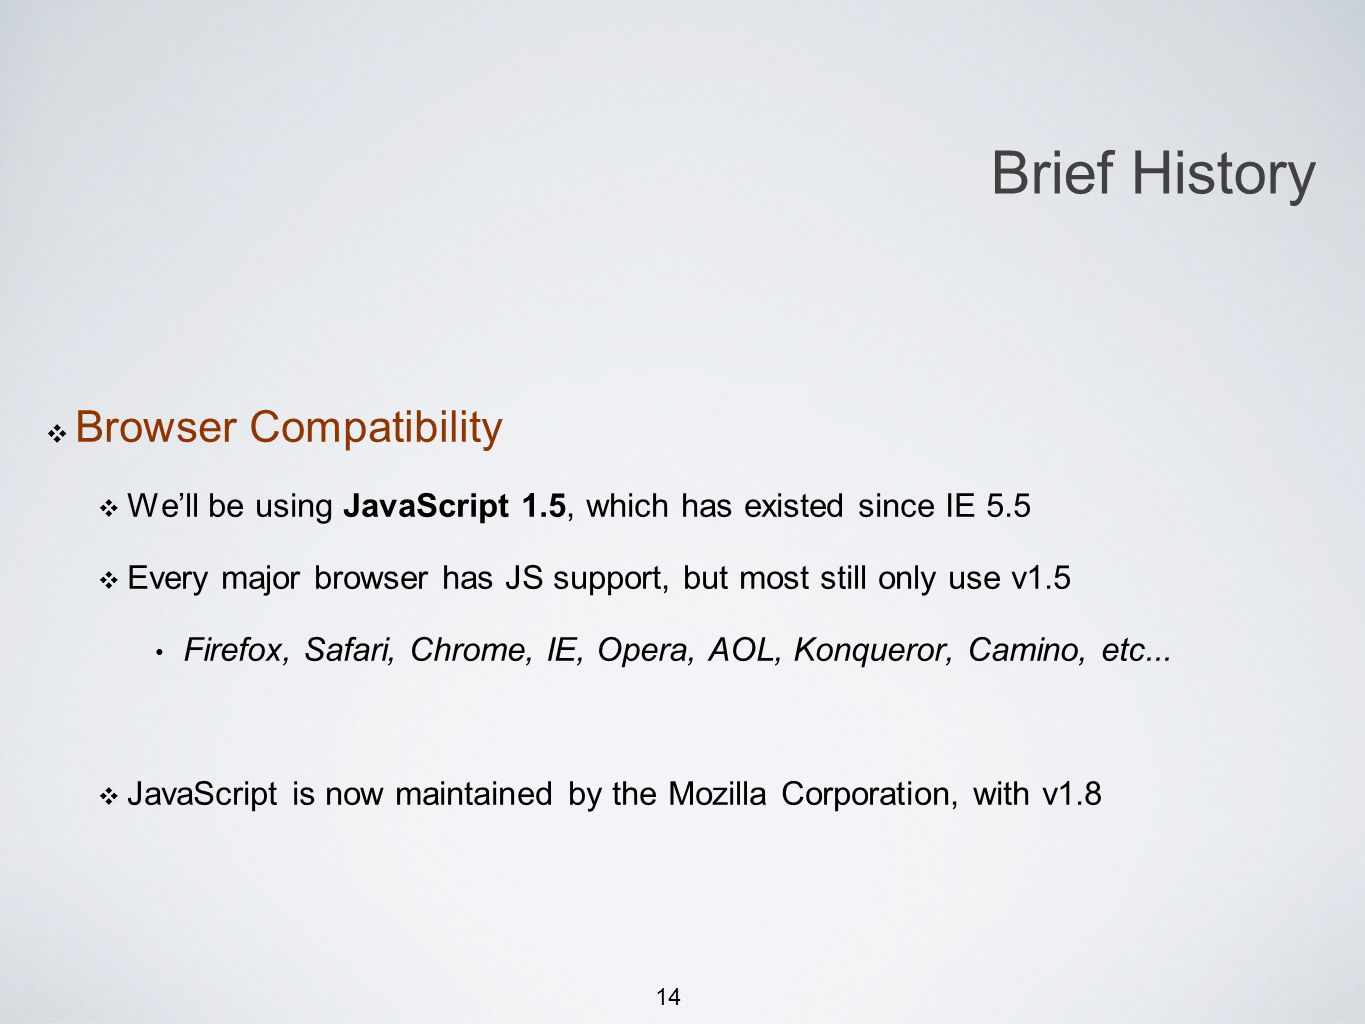 14 Browser Compatibility Well be using JavaScript 1.5, which has existed since IE 5.5 Every major browser has JS support, but most still only use v1.5